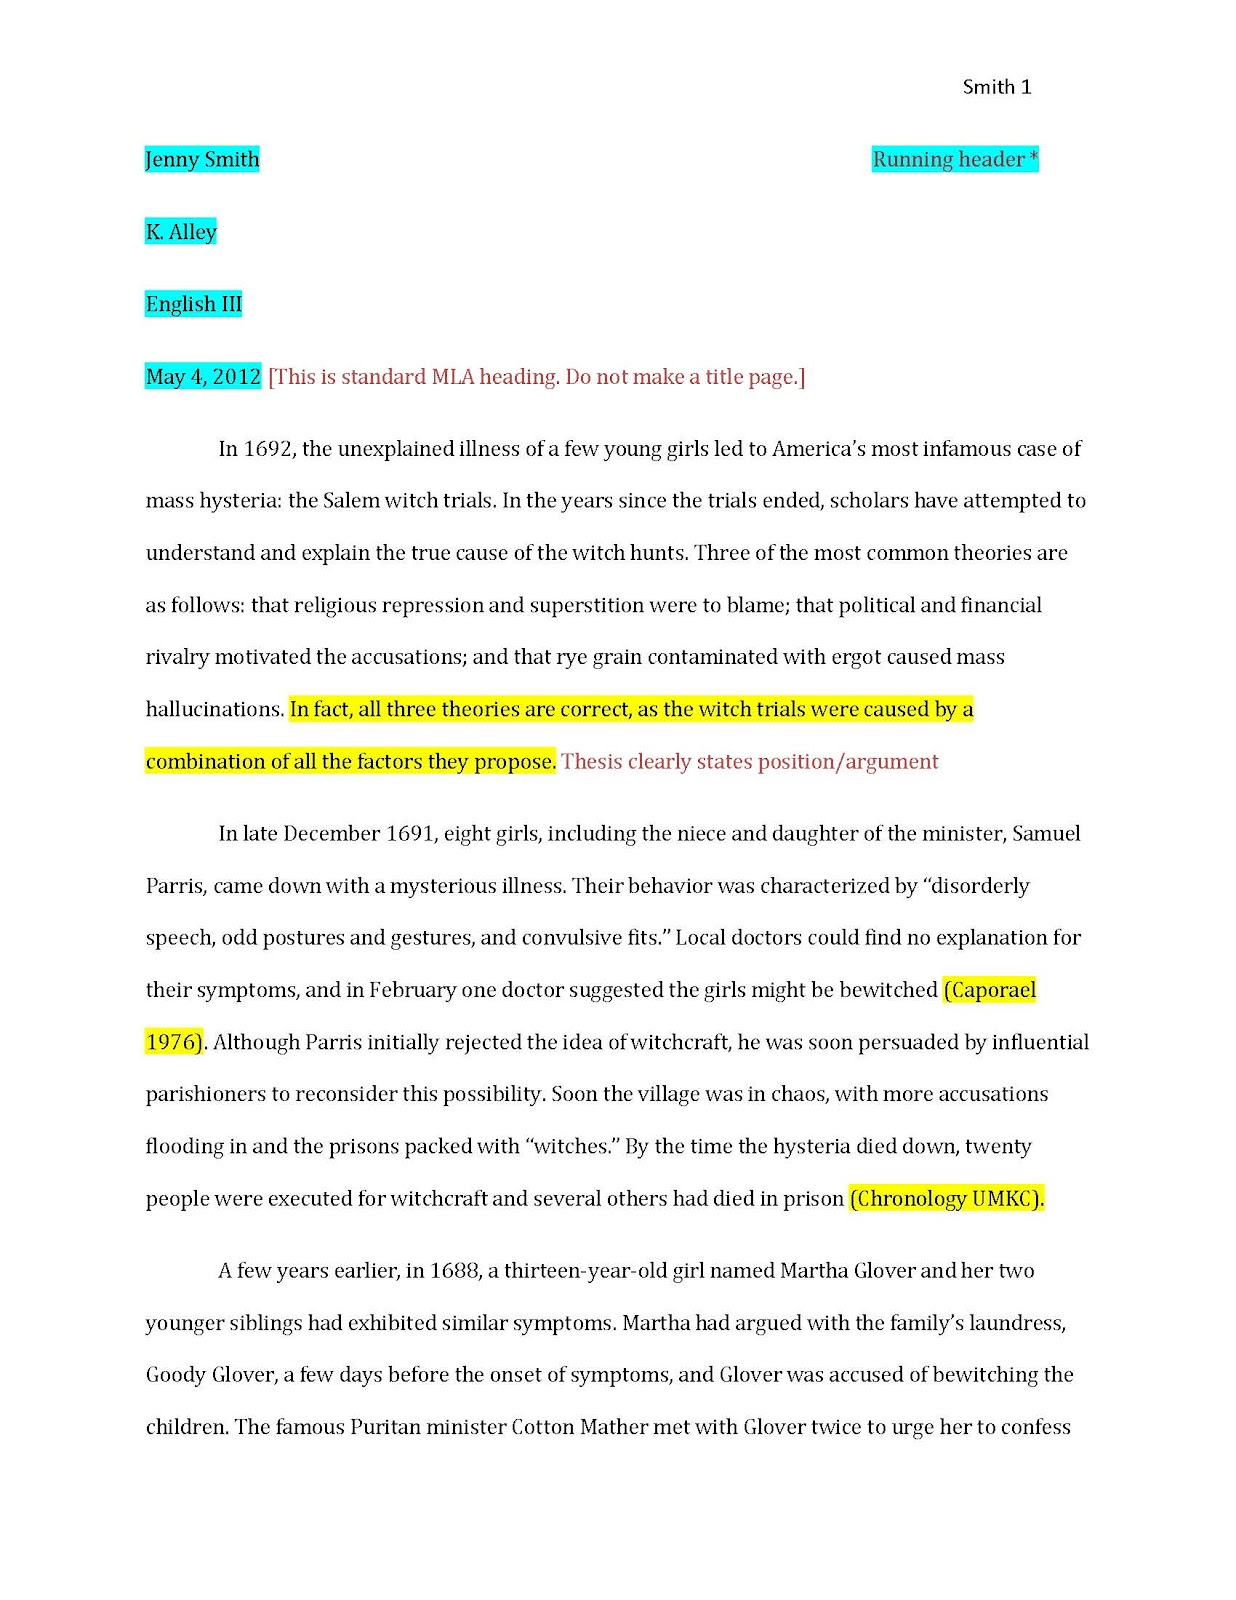 004 Research Paper Examplepaper Page 1 How To Cite Remarkable Chicago A Style Sources In Full